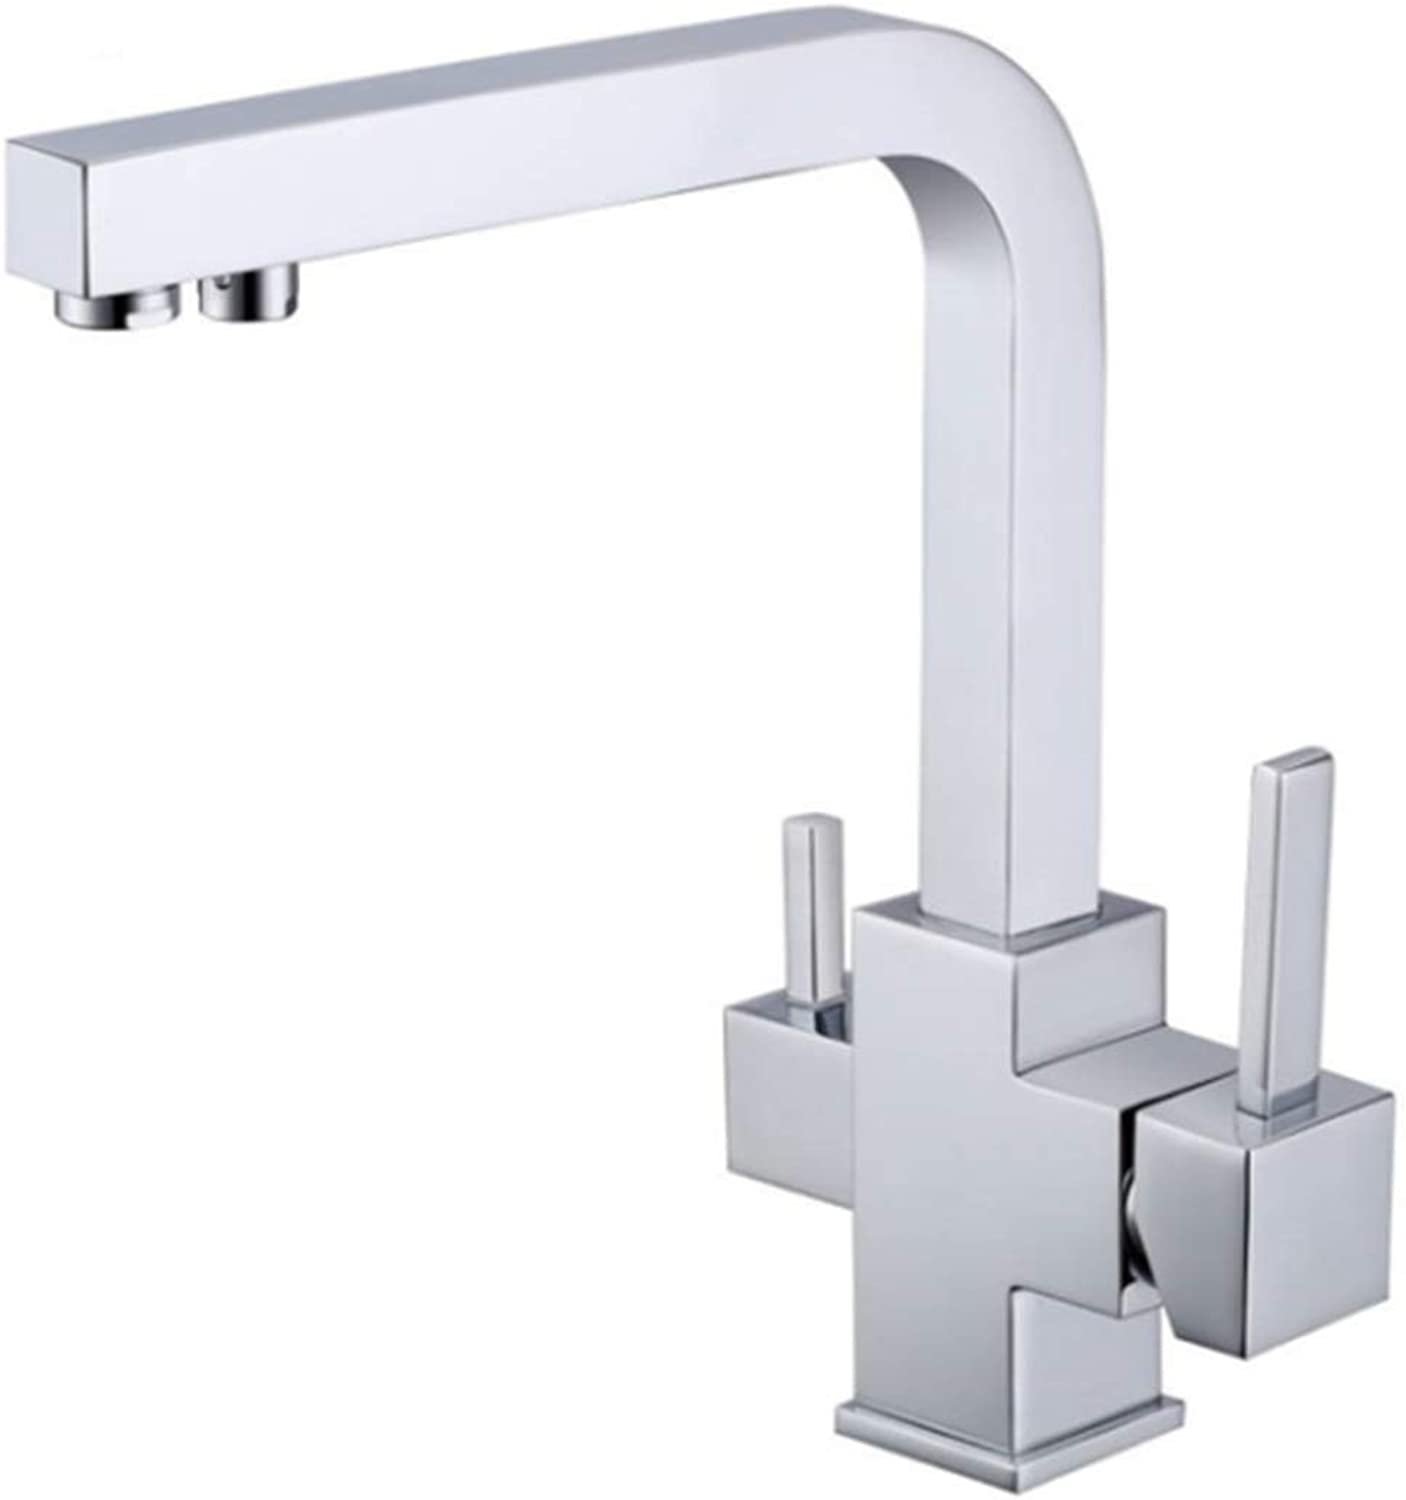 Taps Kitchen Basin Bathroom Washroomsquare Kitchen Faucet with Double-Functions Kitchen Faucet Three Way Tap for Water Filter